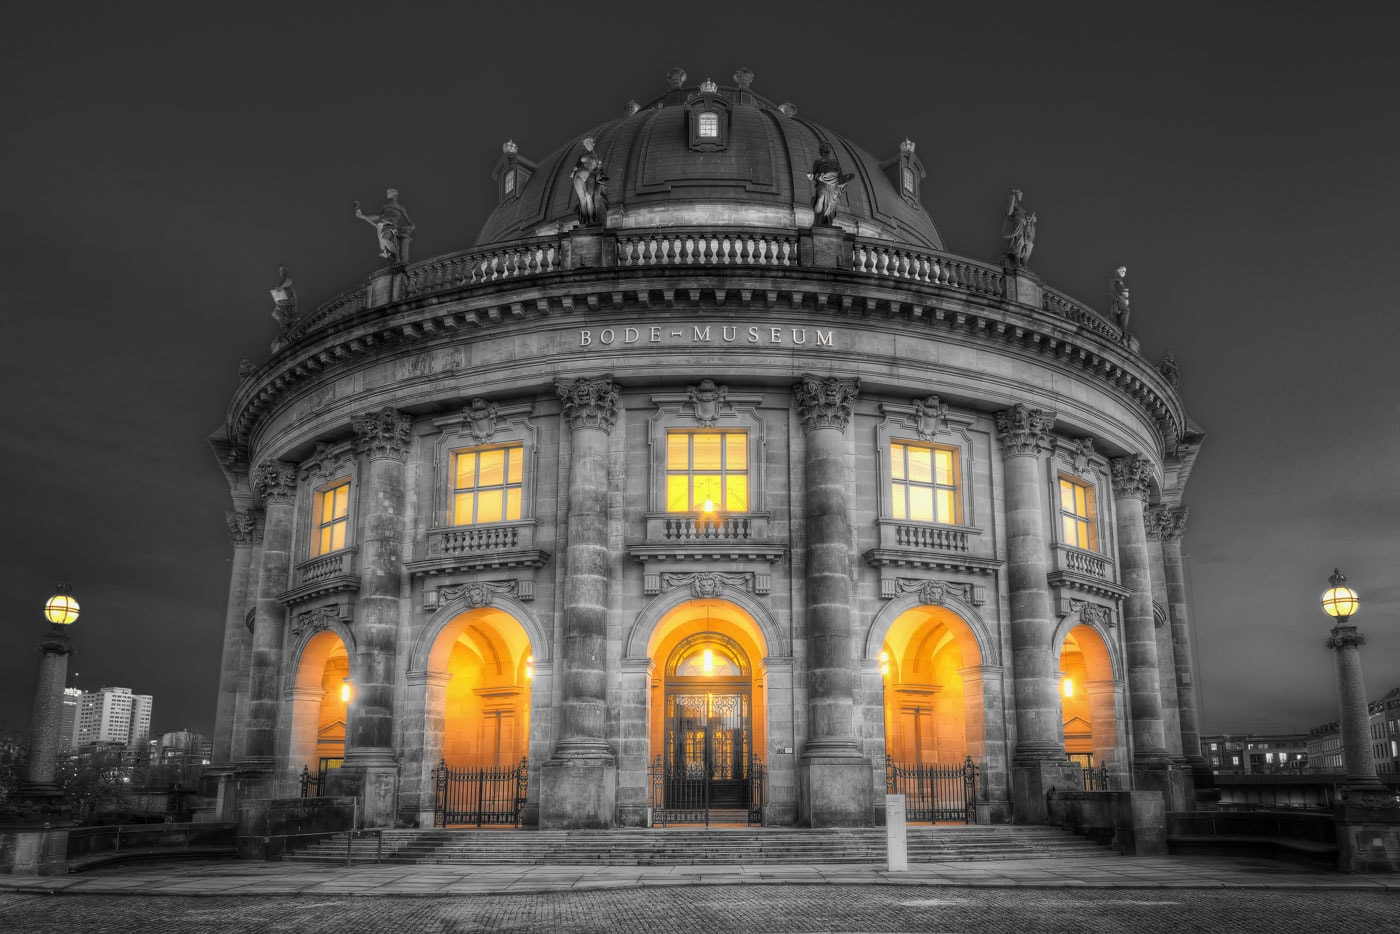 Bode-Museum in Berlin in Black and White